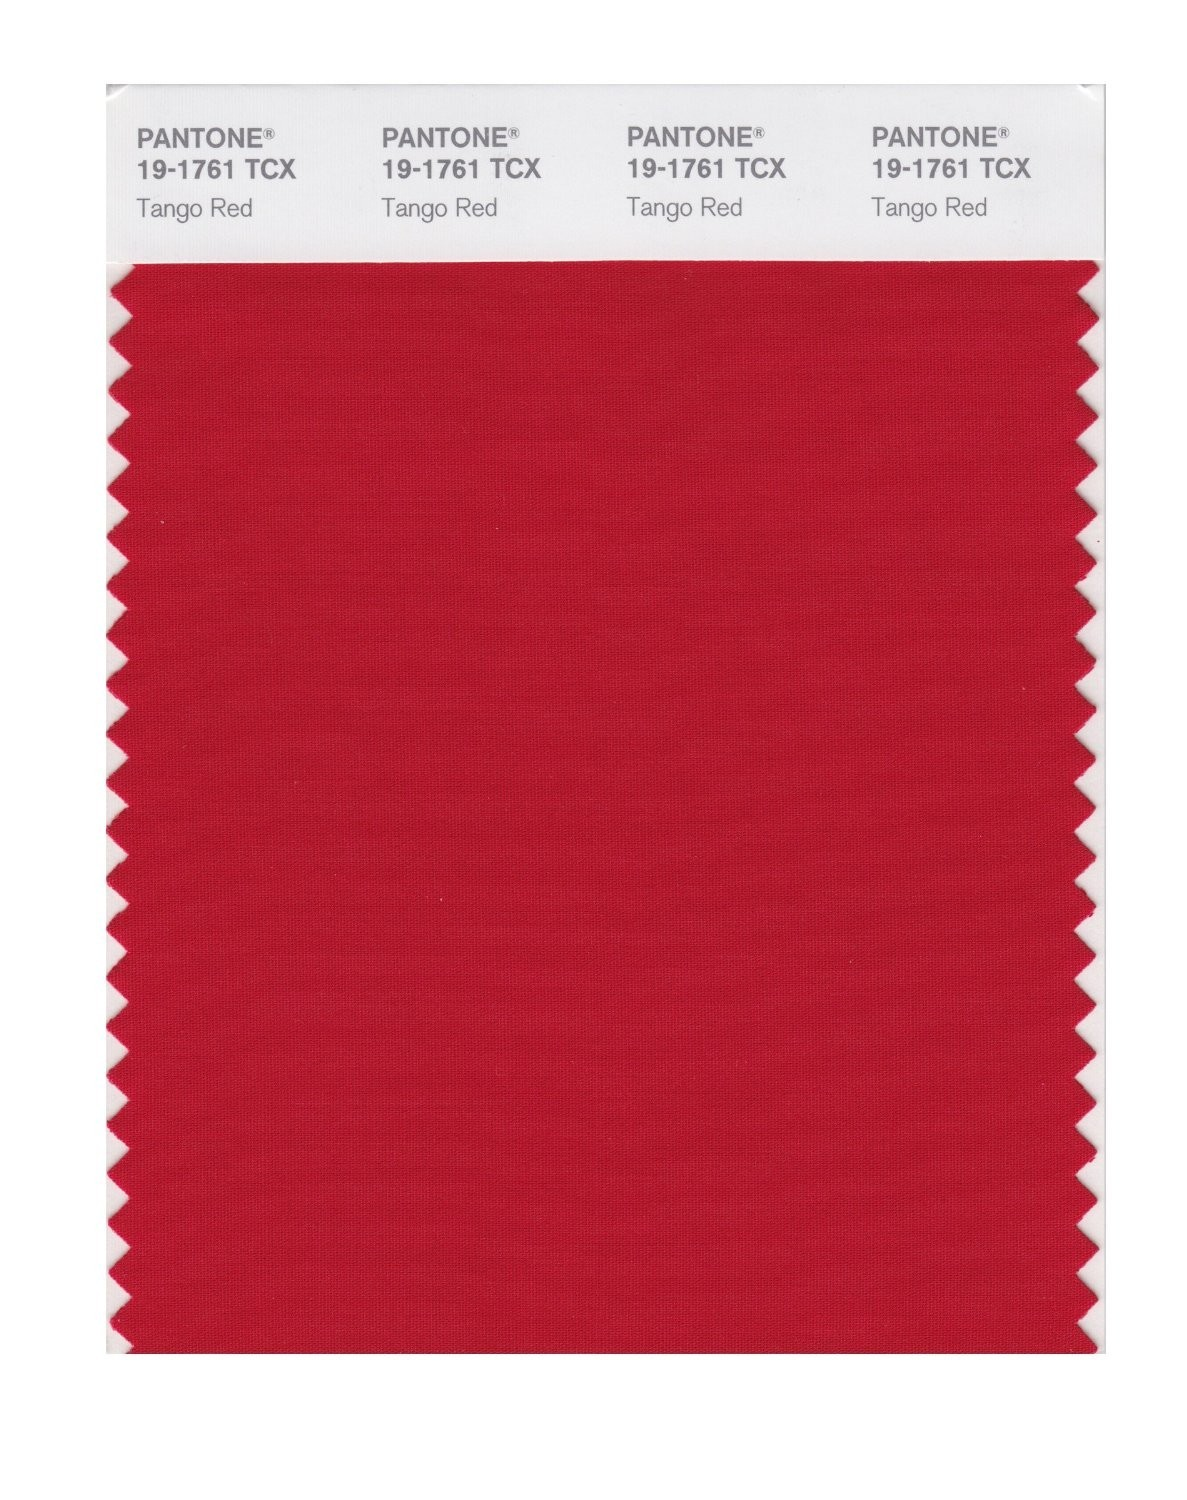 Pantone 19-1761 TCX Swatch Card Tango Red